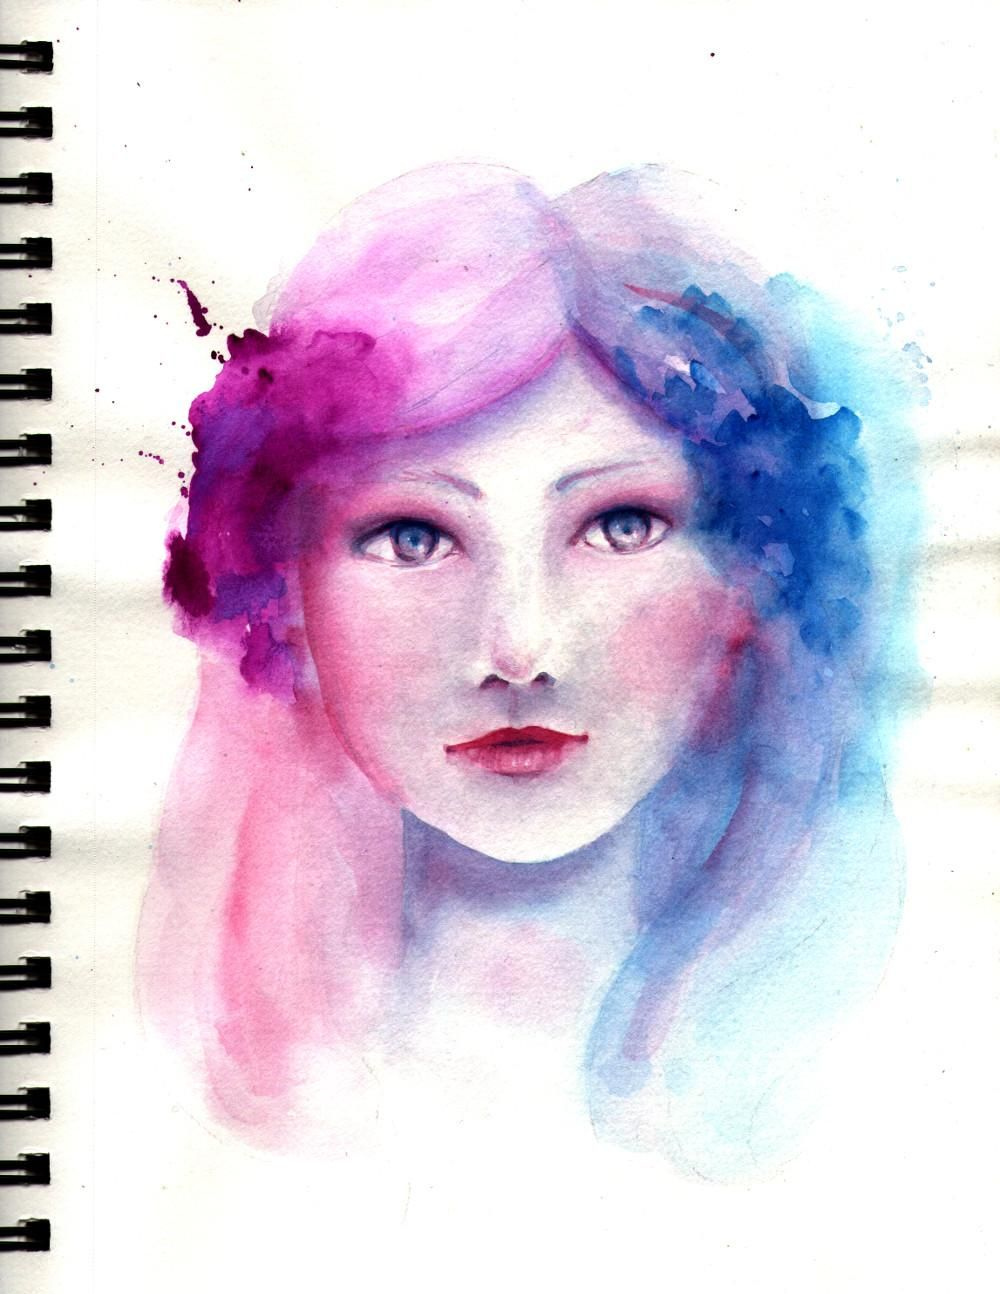 Whimsical girl - image 3 - student project